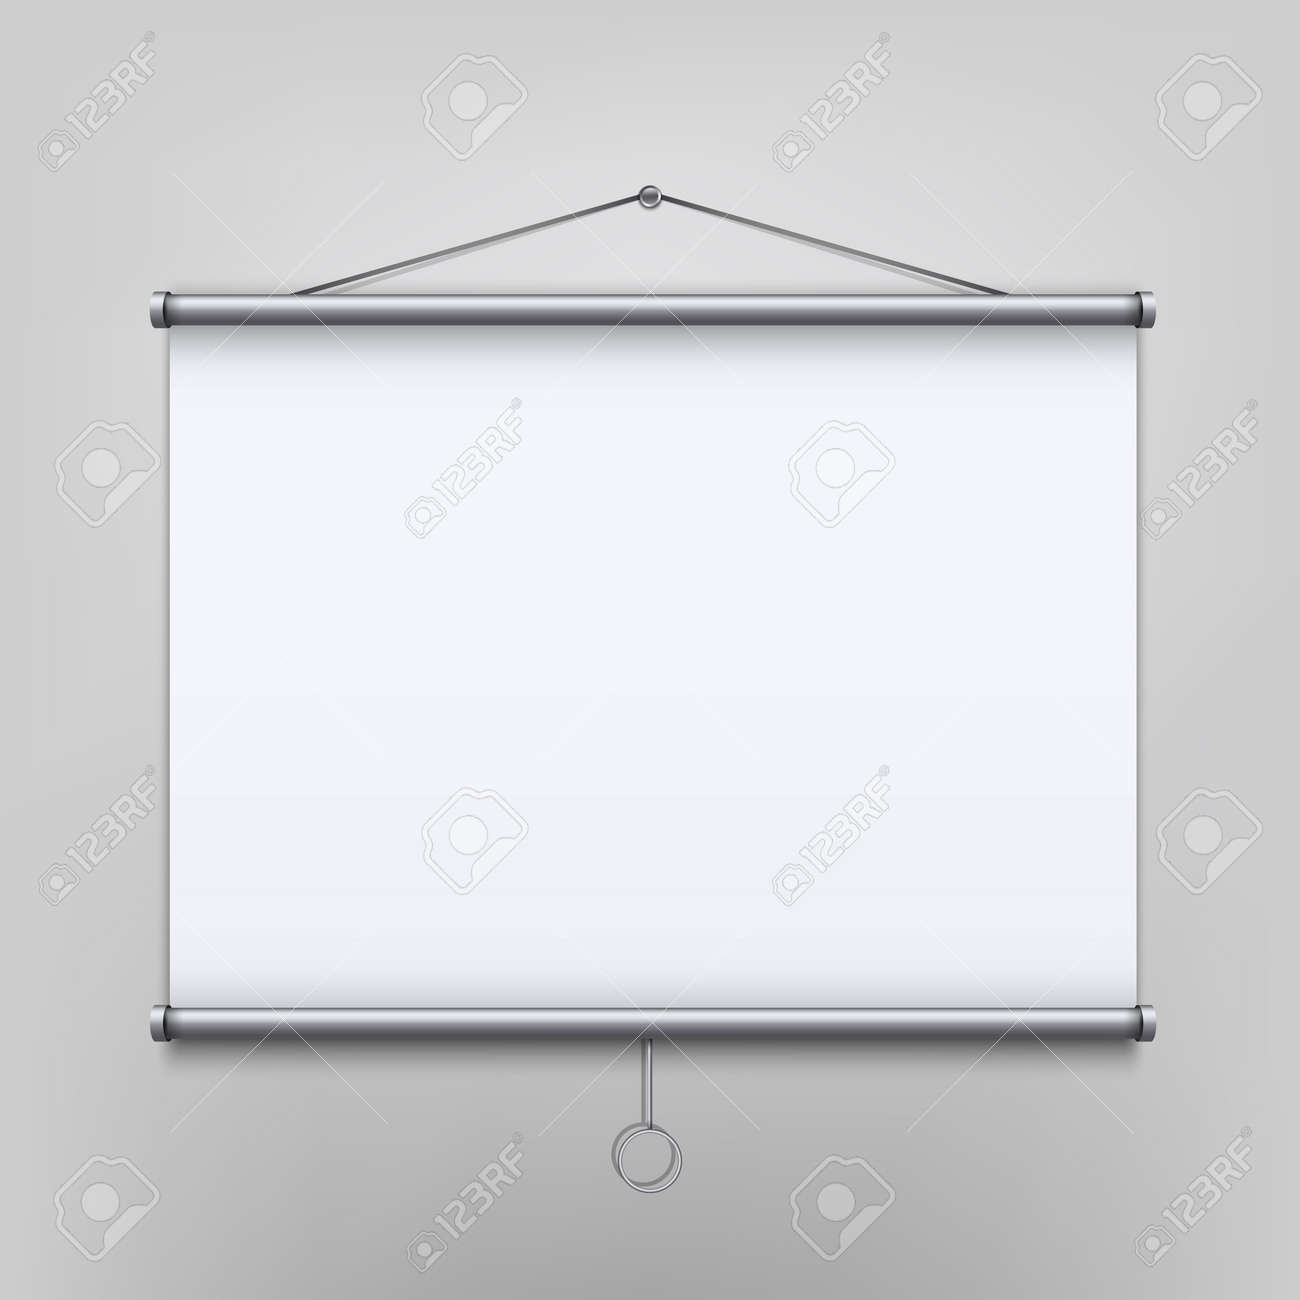 creative vector illustration of empty meeting projector screen